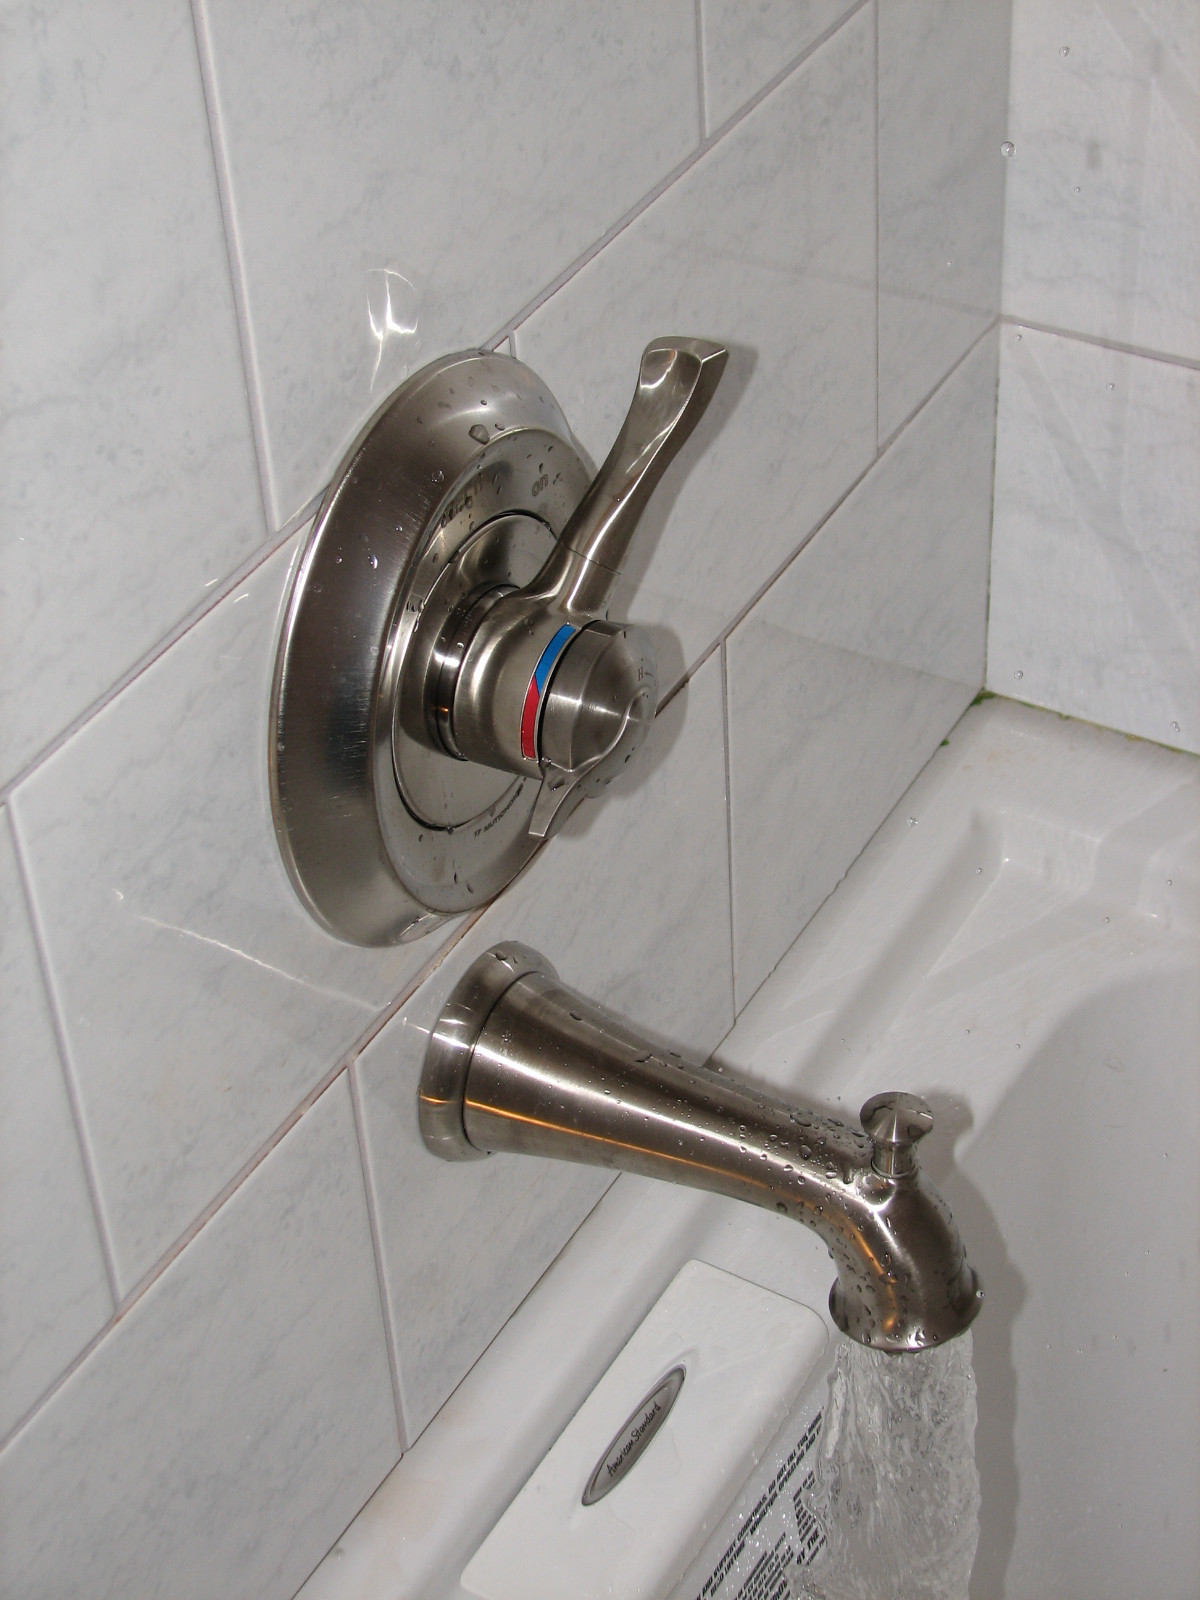 Why Does My Shower Head Drip When The Tub Faucet Is On